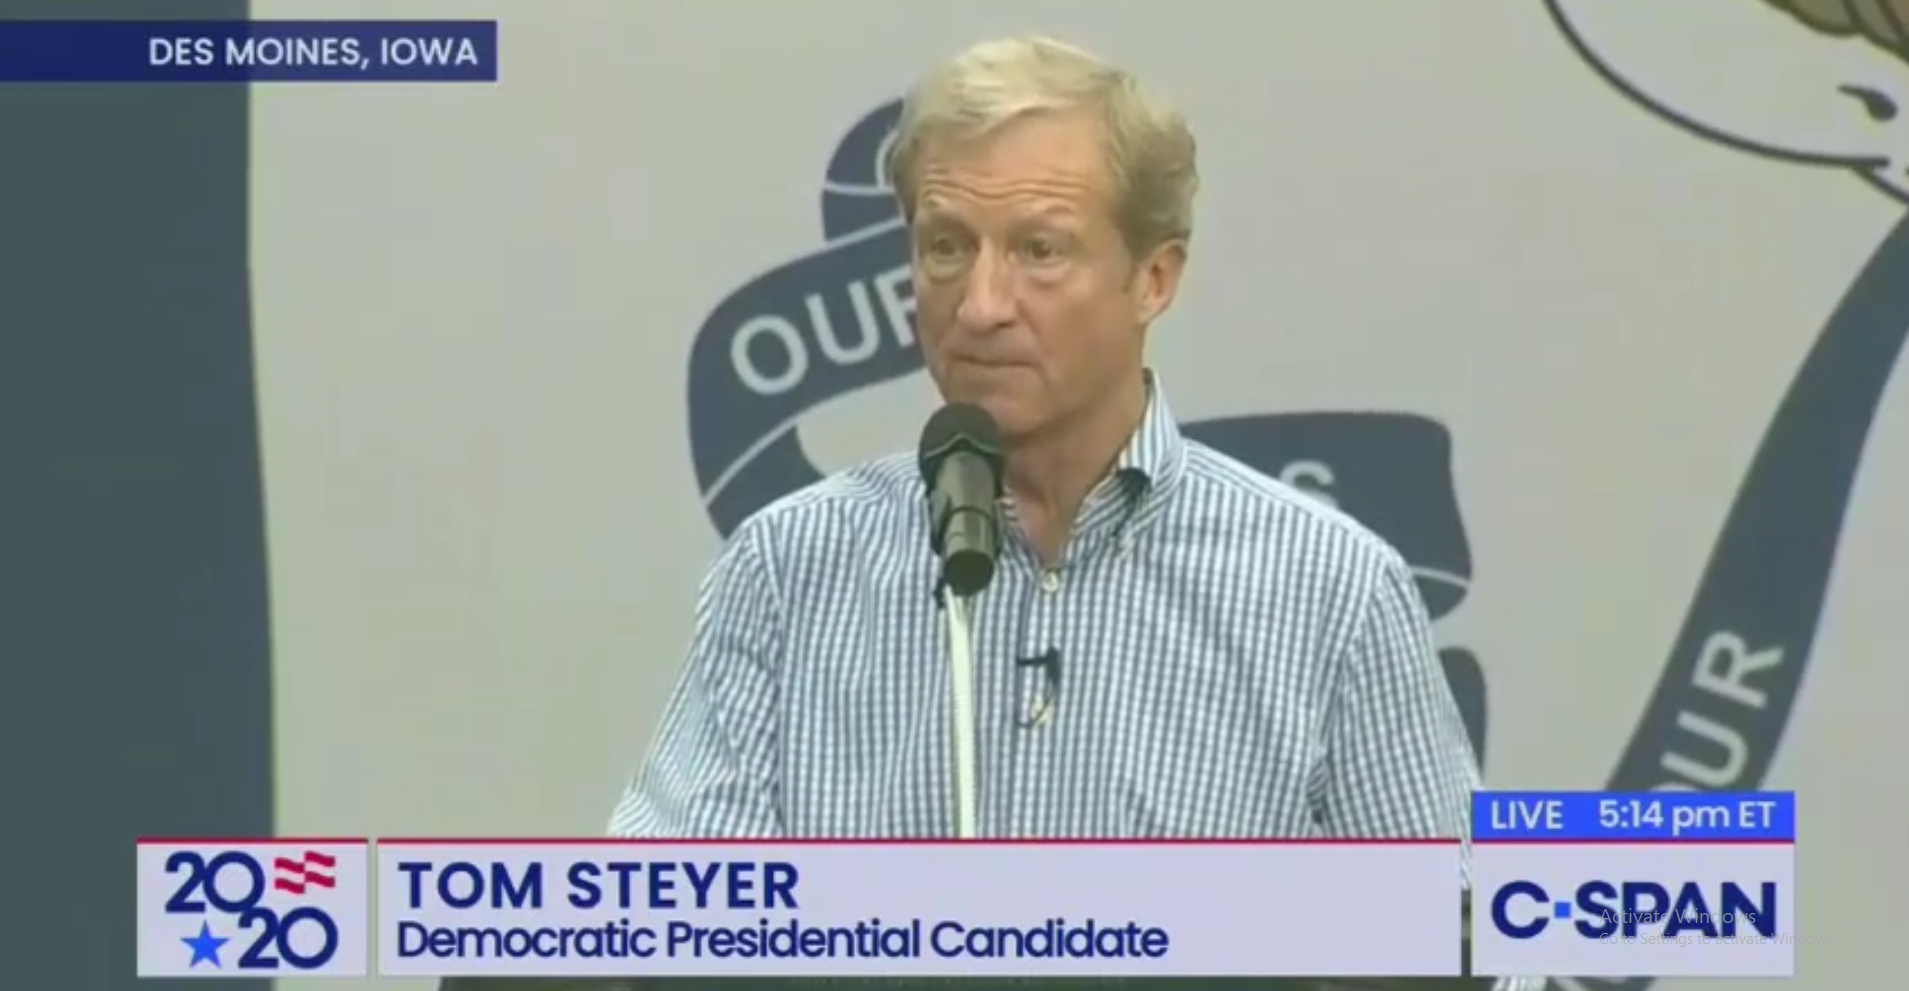 Steyer Compares His Need to Impeach Campaign to Fighting Nazis